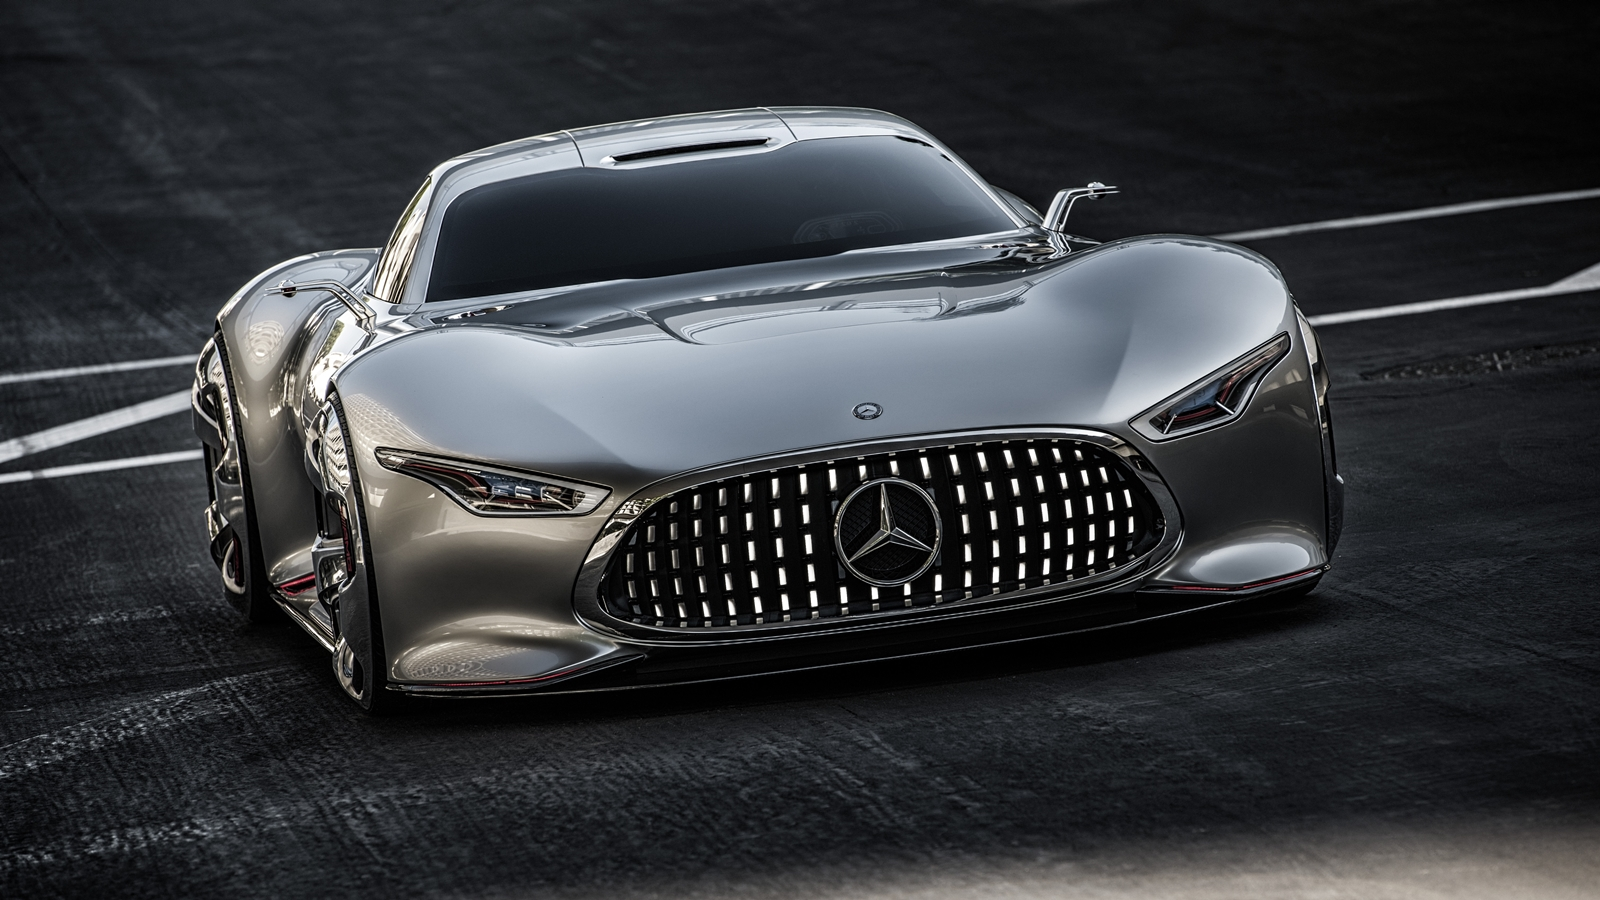 Mercedes Wants to Sell You a 1,000 HP Hypercar, Interested?